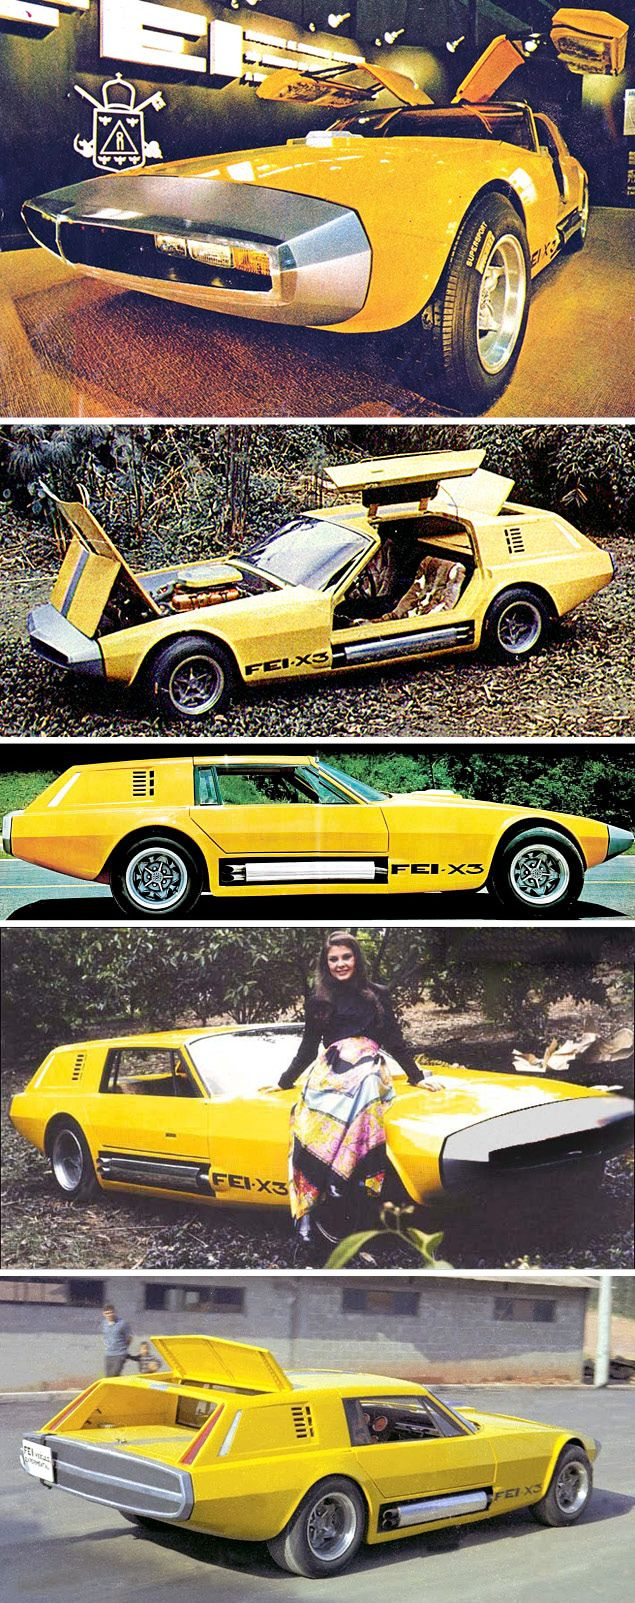 FEI X3 Lavinia, 1970. Another product of the Fundação Educacional Inaciana engineering school, a gull-winged shooting brake-type sports car which used parts, including a 5.2 litre V8, from the Dodge Dart